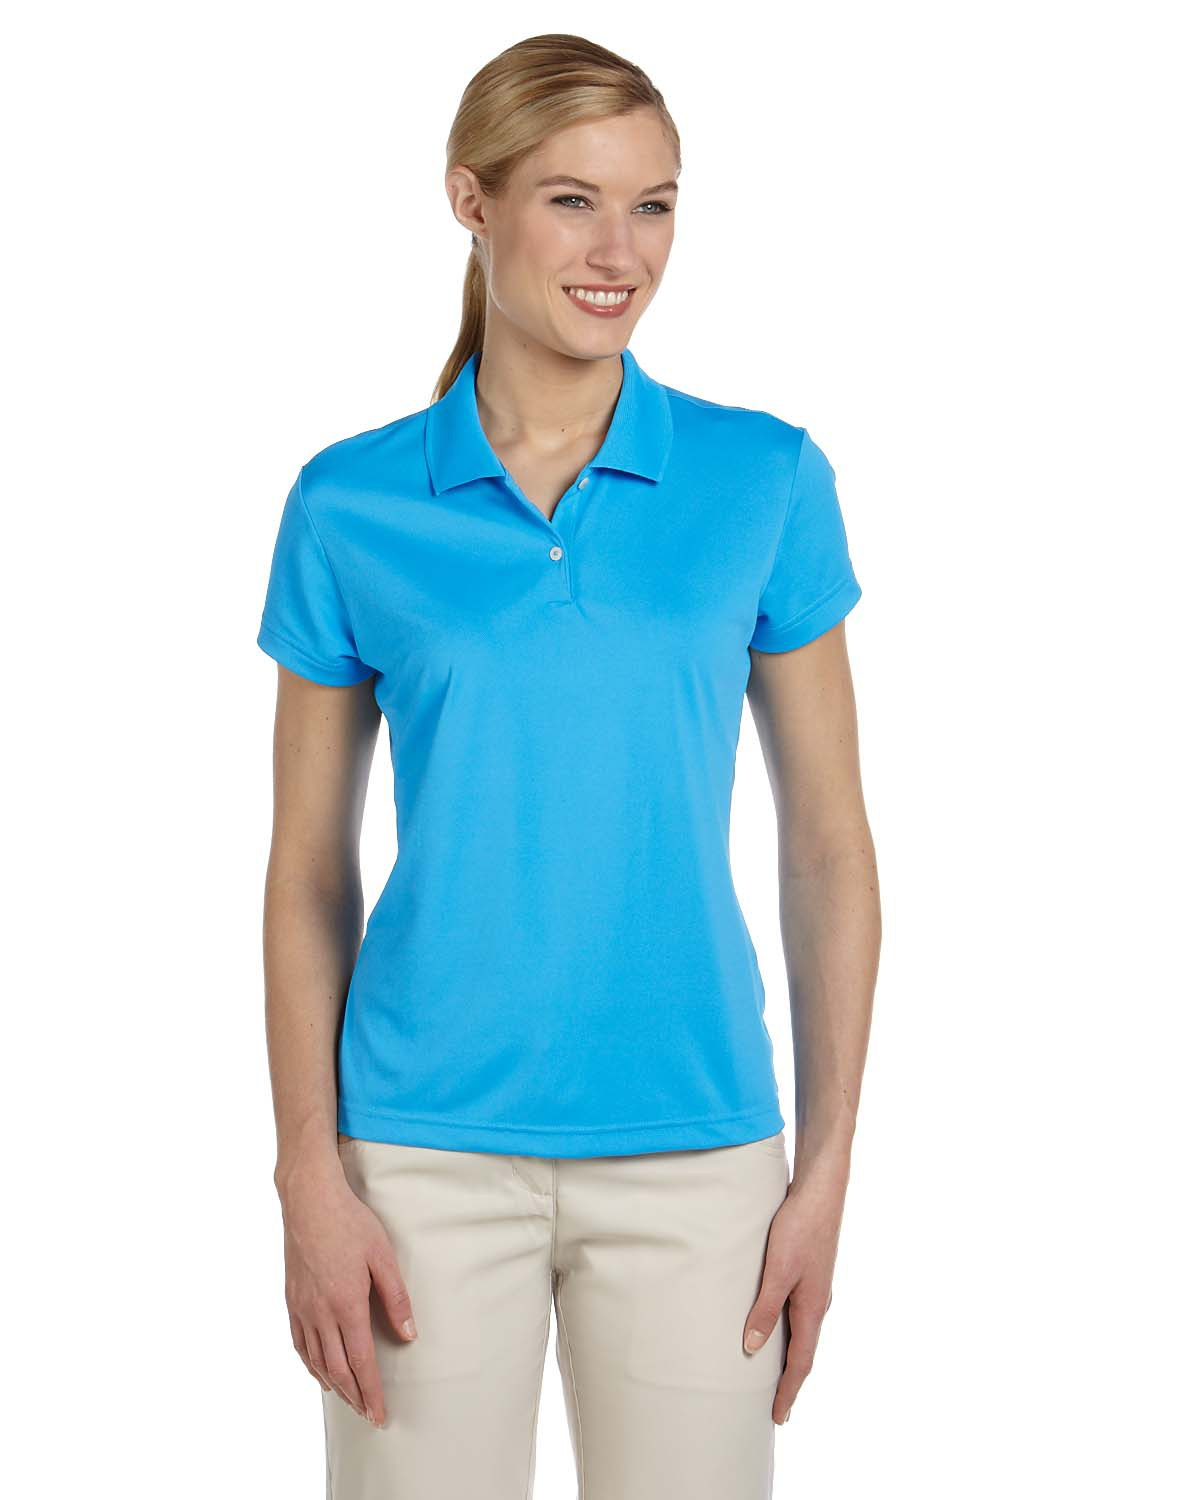 ADIDAS A122 - Ladies' ClimaLite Pique Polo